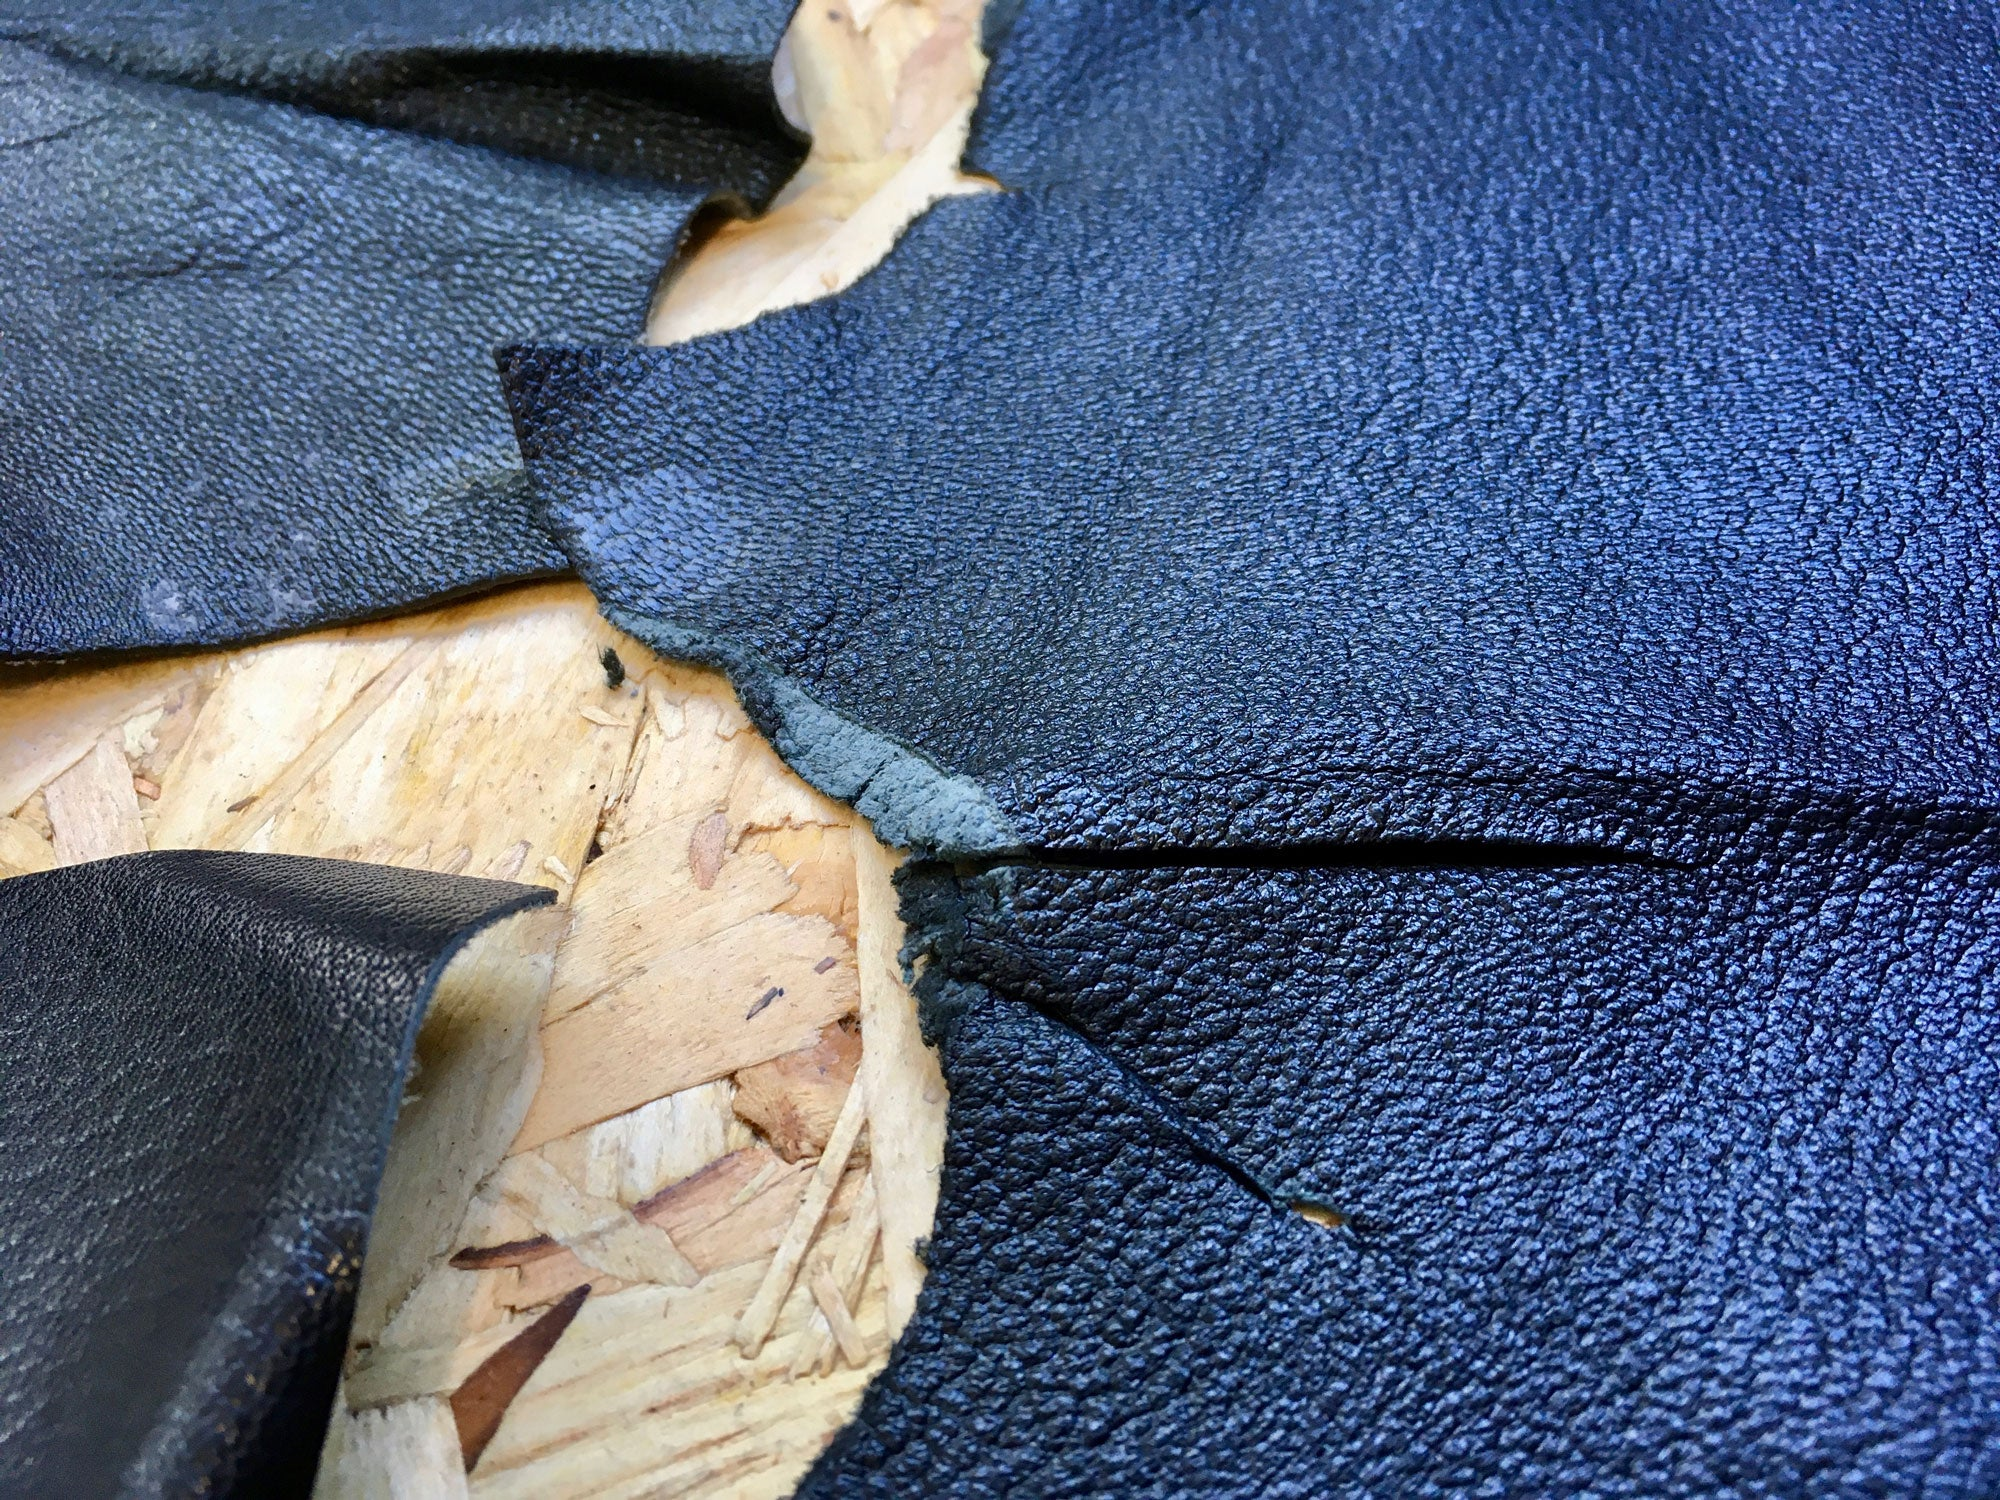 Scrap Leather Offcuts – Black Goatskin Leather Pieces